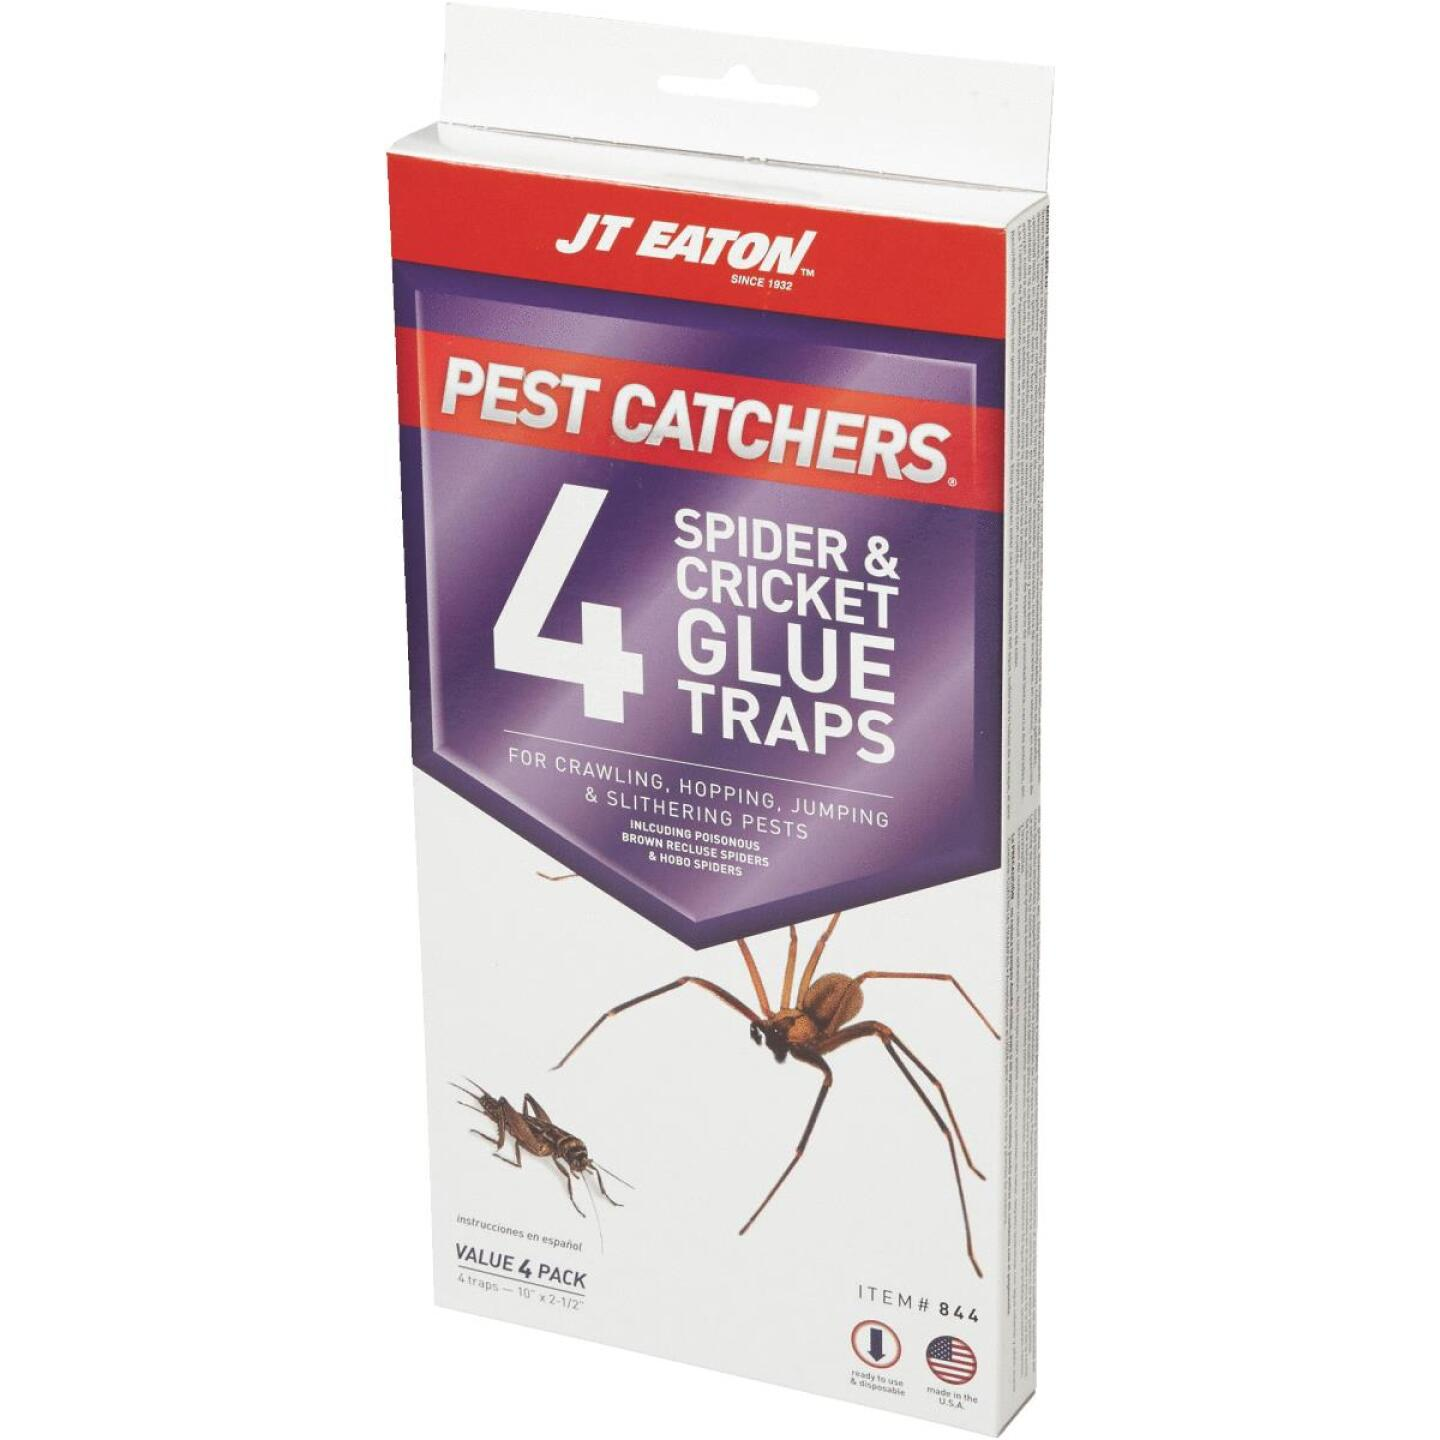 JT Eaton Pest Catchers Indoor Glue Cricket & Spider Trap (4-Pack) Image 3